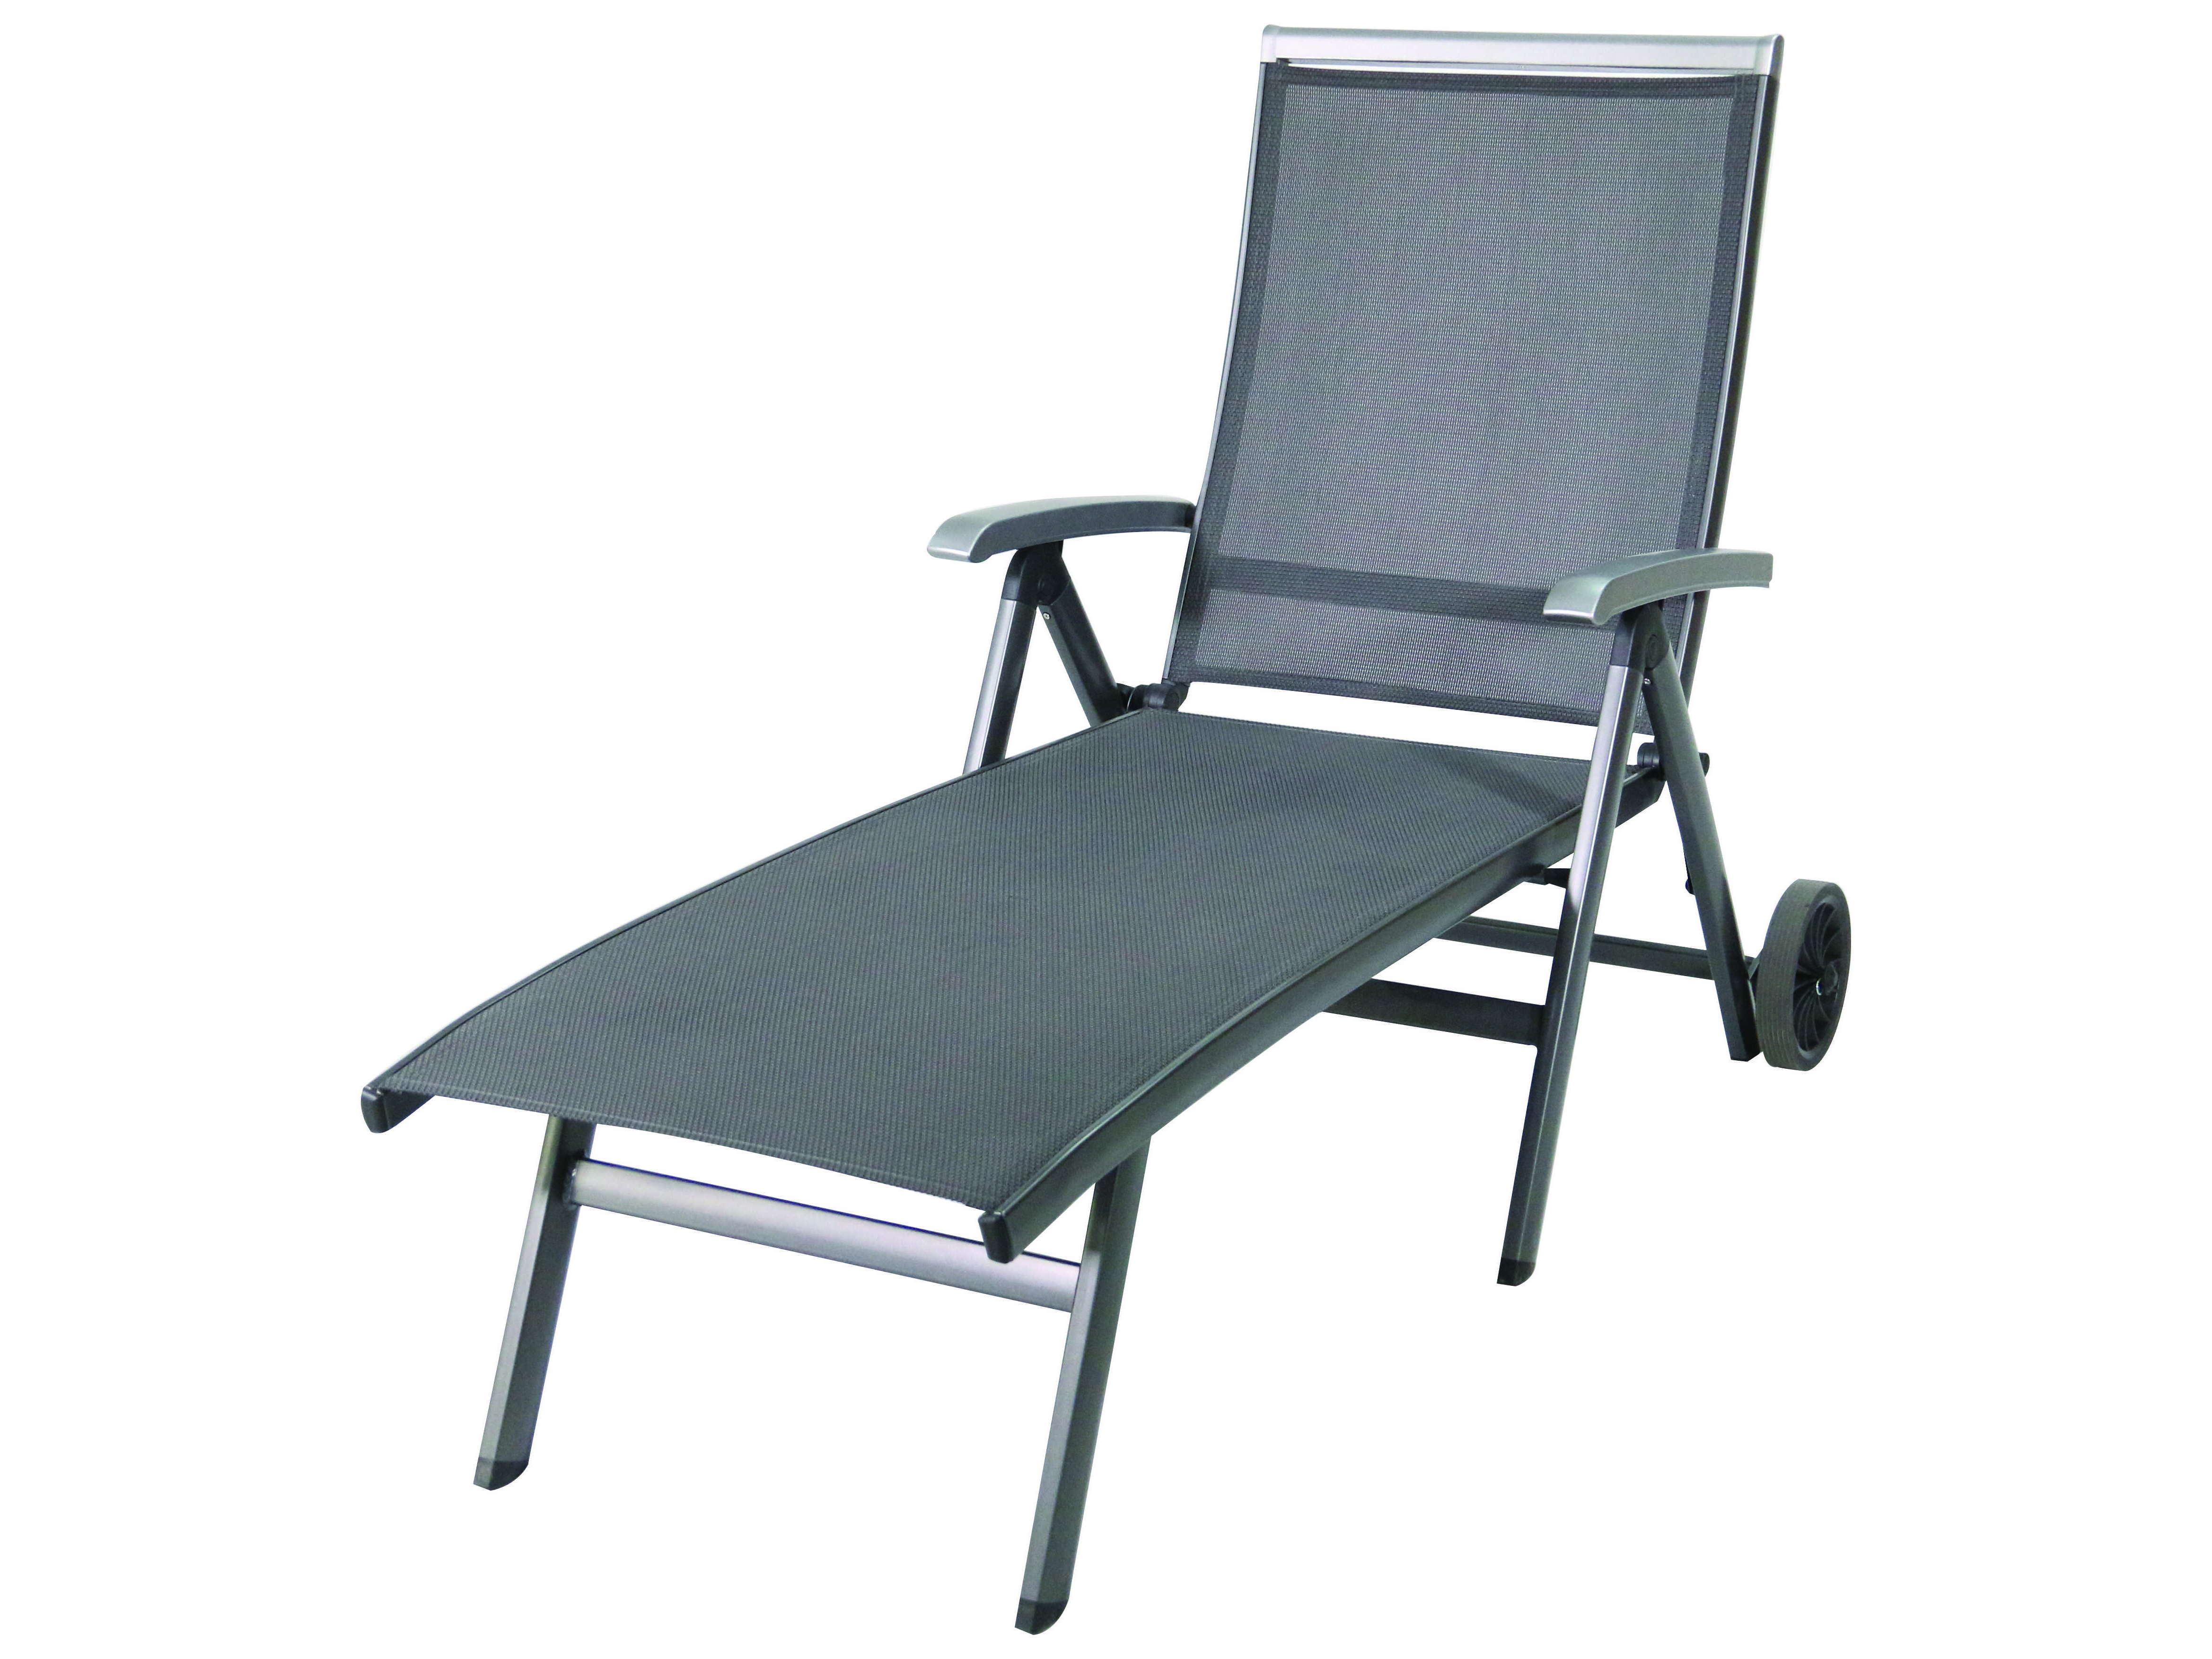 Sunvilla Bristol Sling Aluminum Wheeled Chaise In Midnight With Regard To Well Known Aluminum Wheeled Chaise Lounges (View 20 of 25)